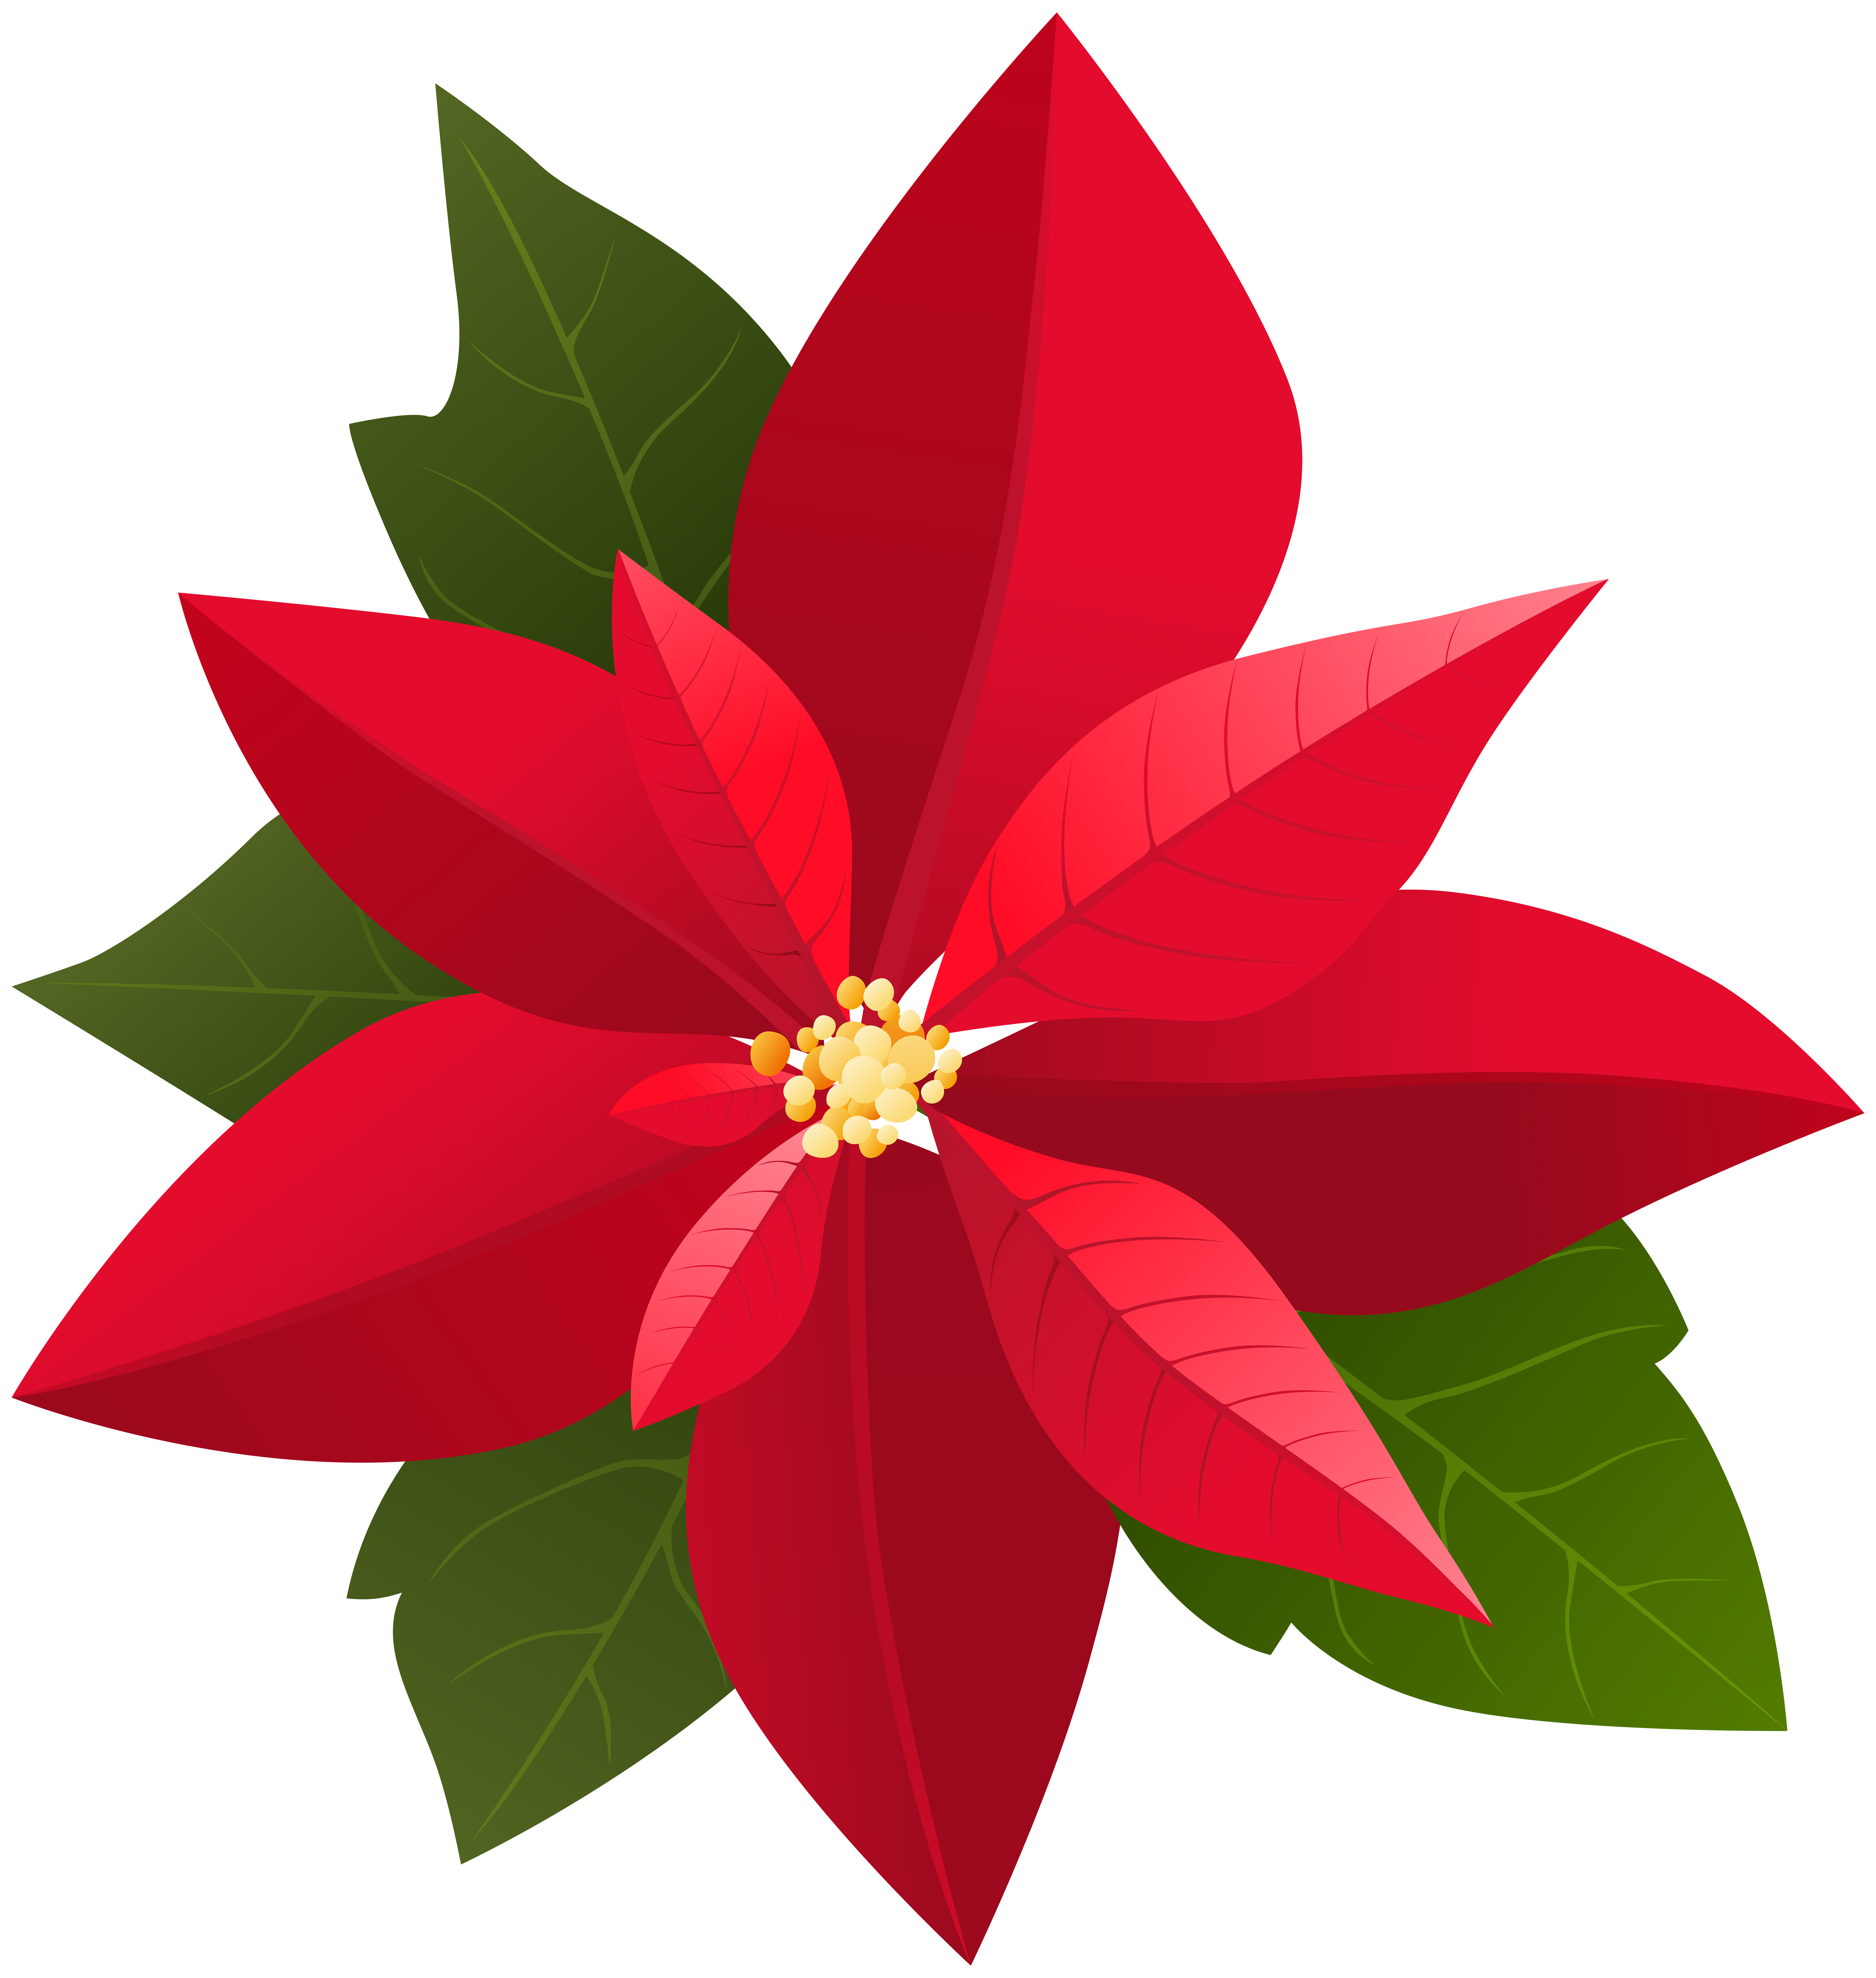 Christmas flower clipart clip art royalty free stock Christmas Poinsettia PNG Clip Art | Gallery Yopriceville - High ... clip art royalty free stock